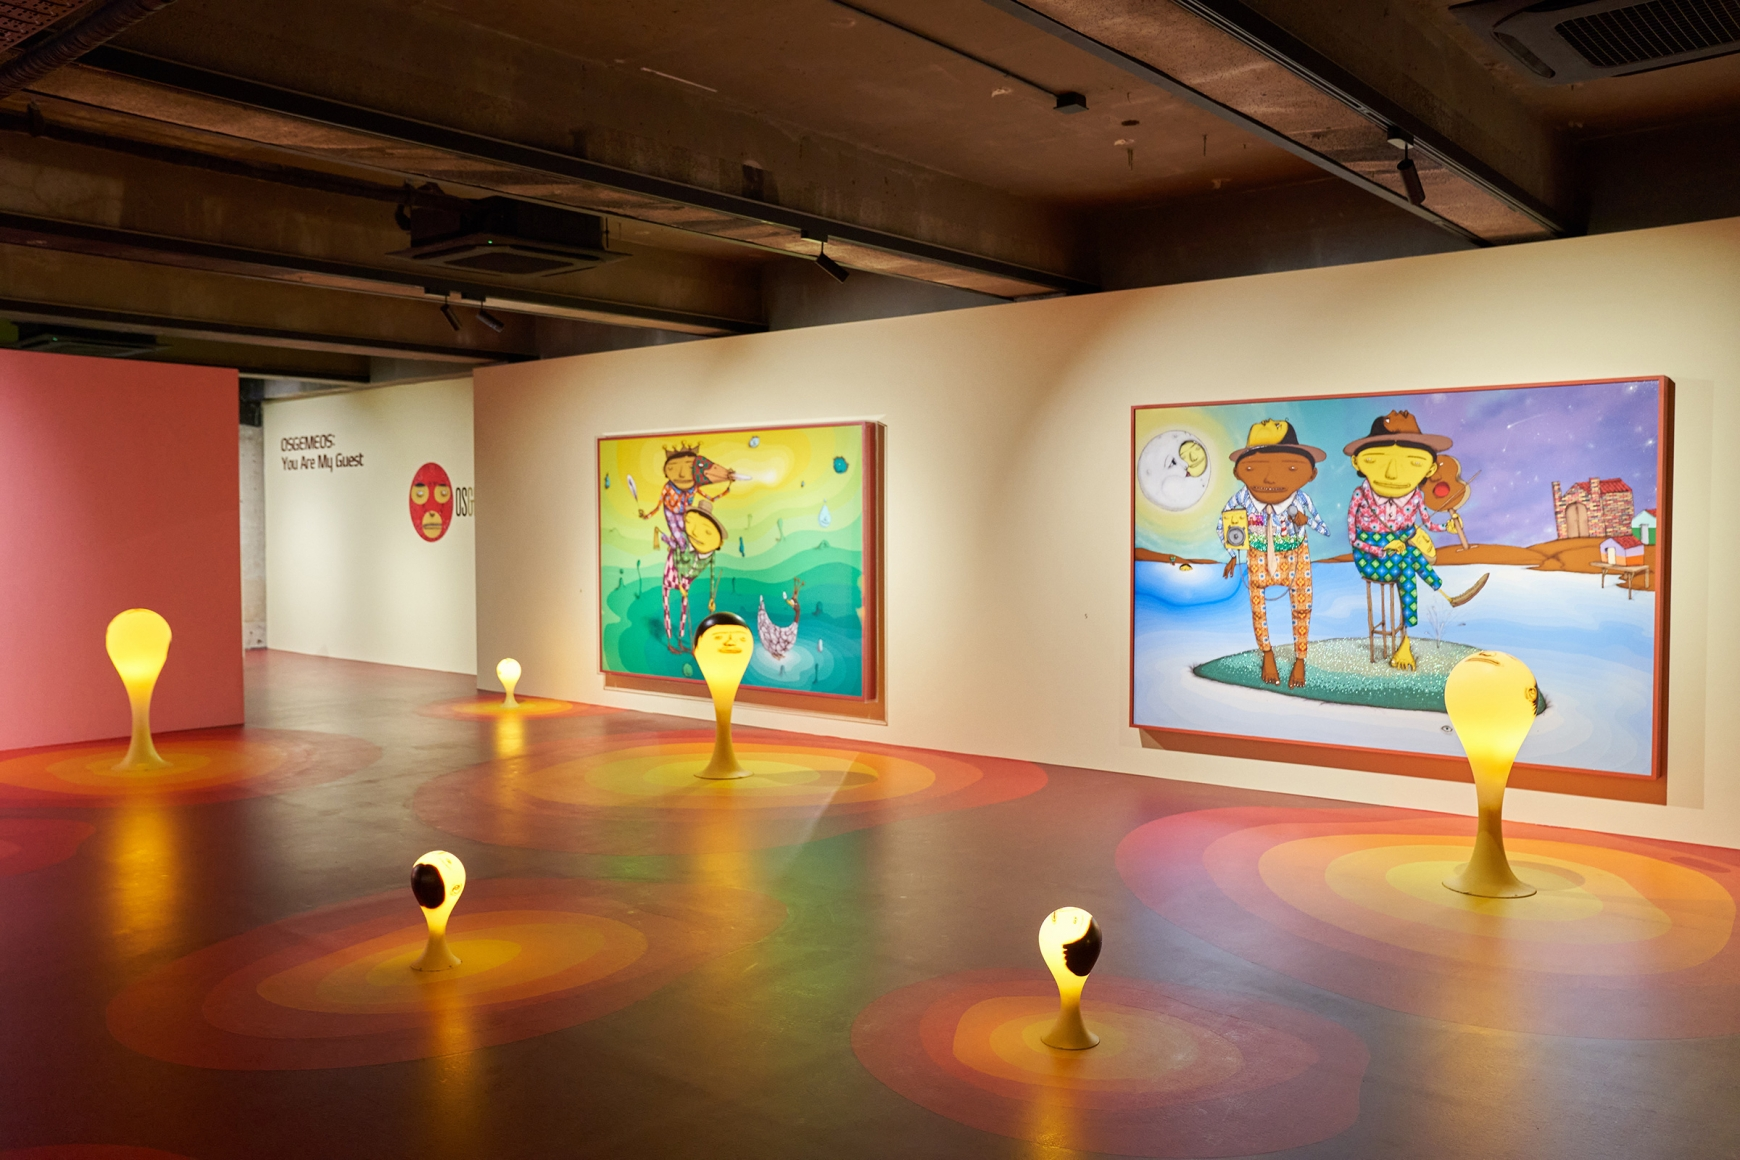 OSGEMEOS: You Are My Guest, Installation view